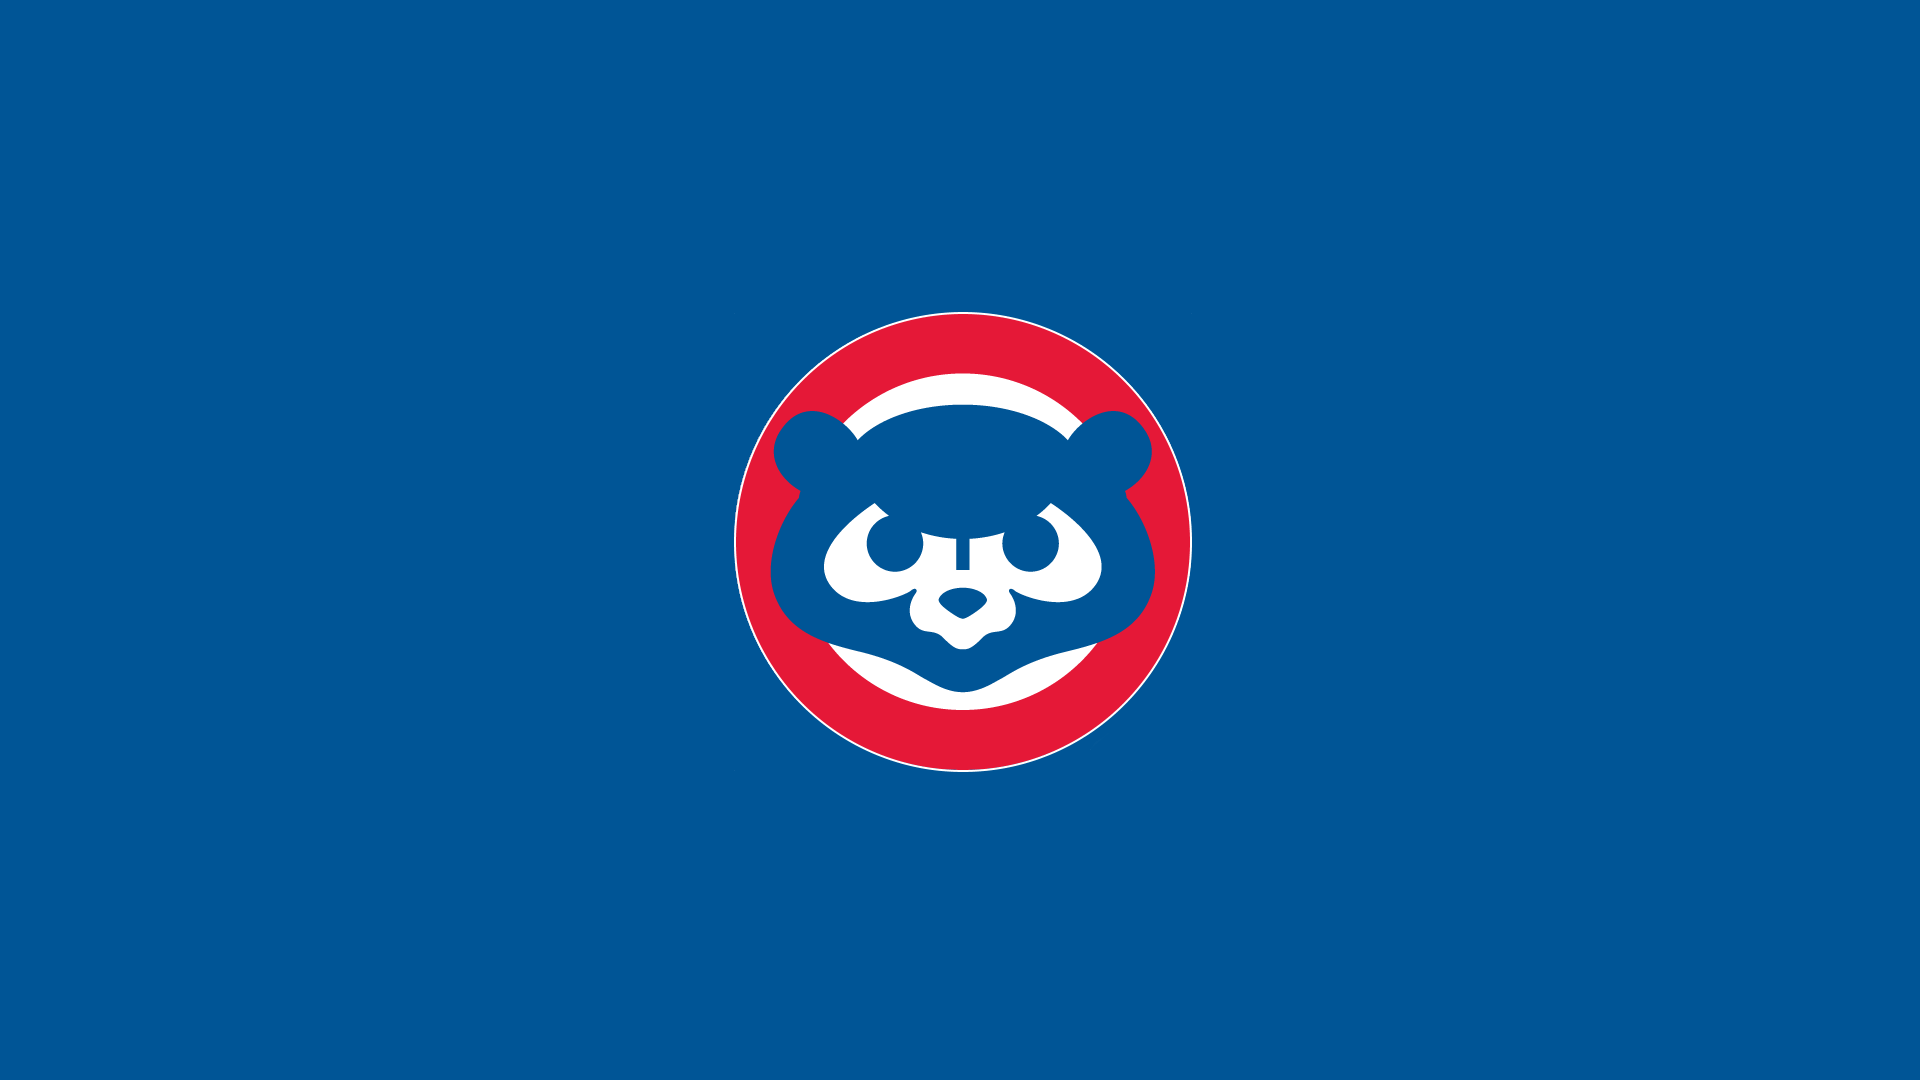 Chicago Cubs Logo Desktop Wallpaper 50381